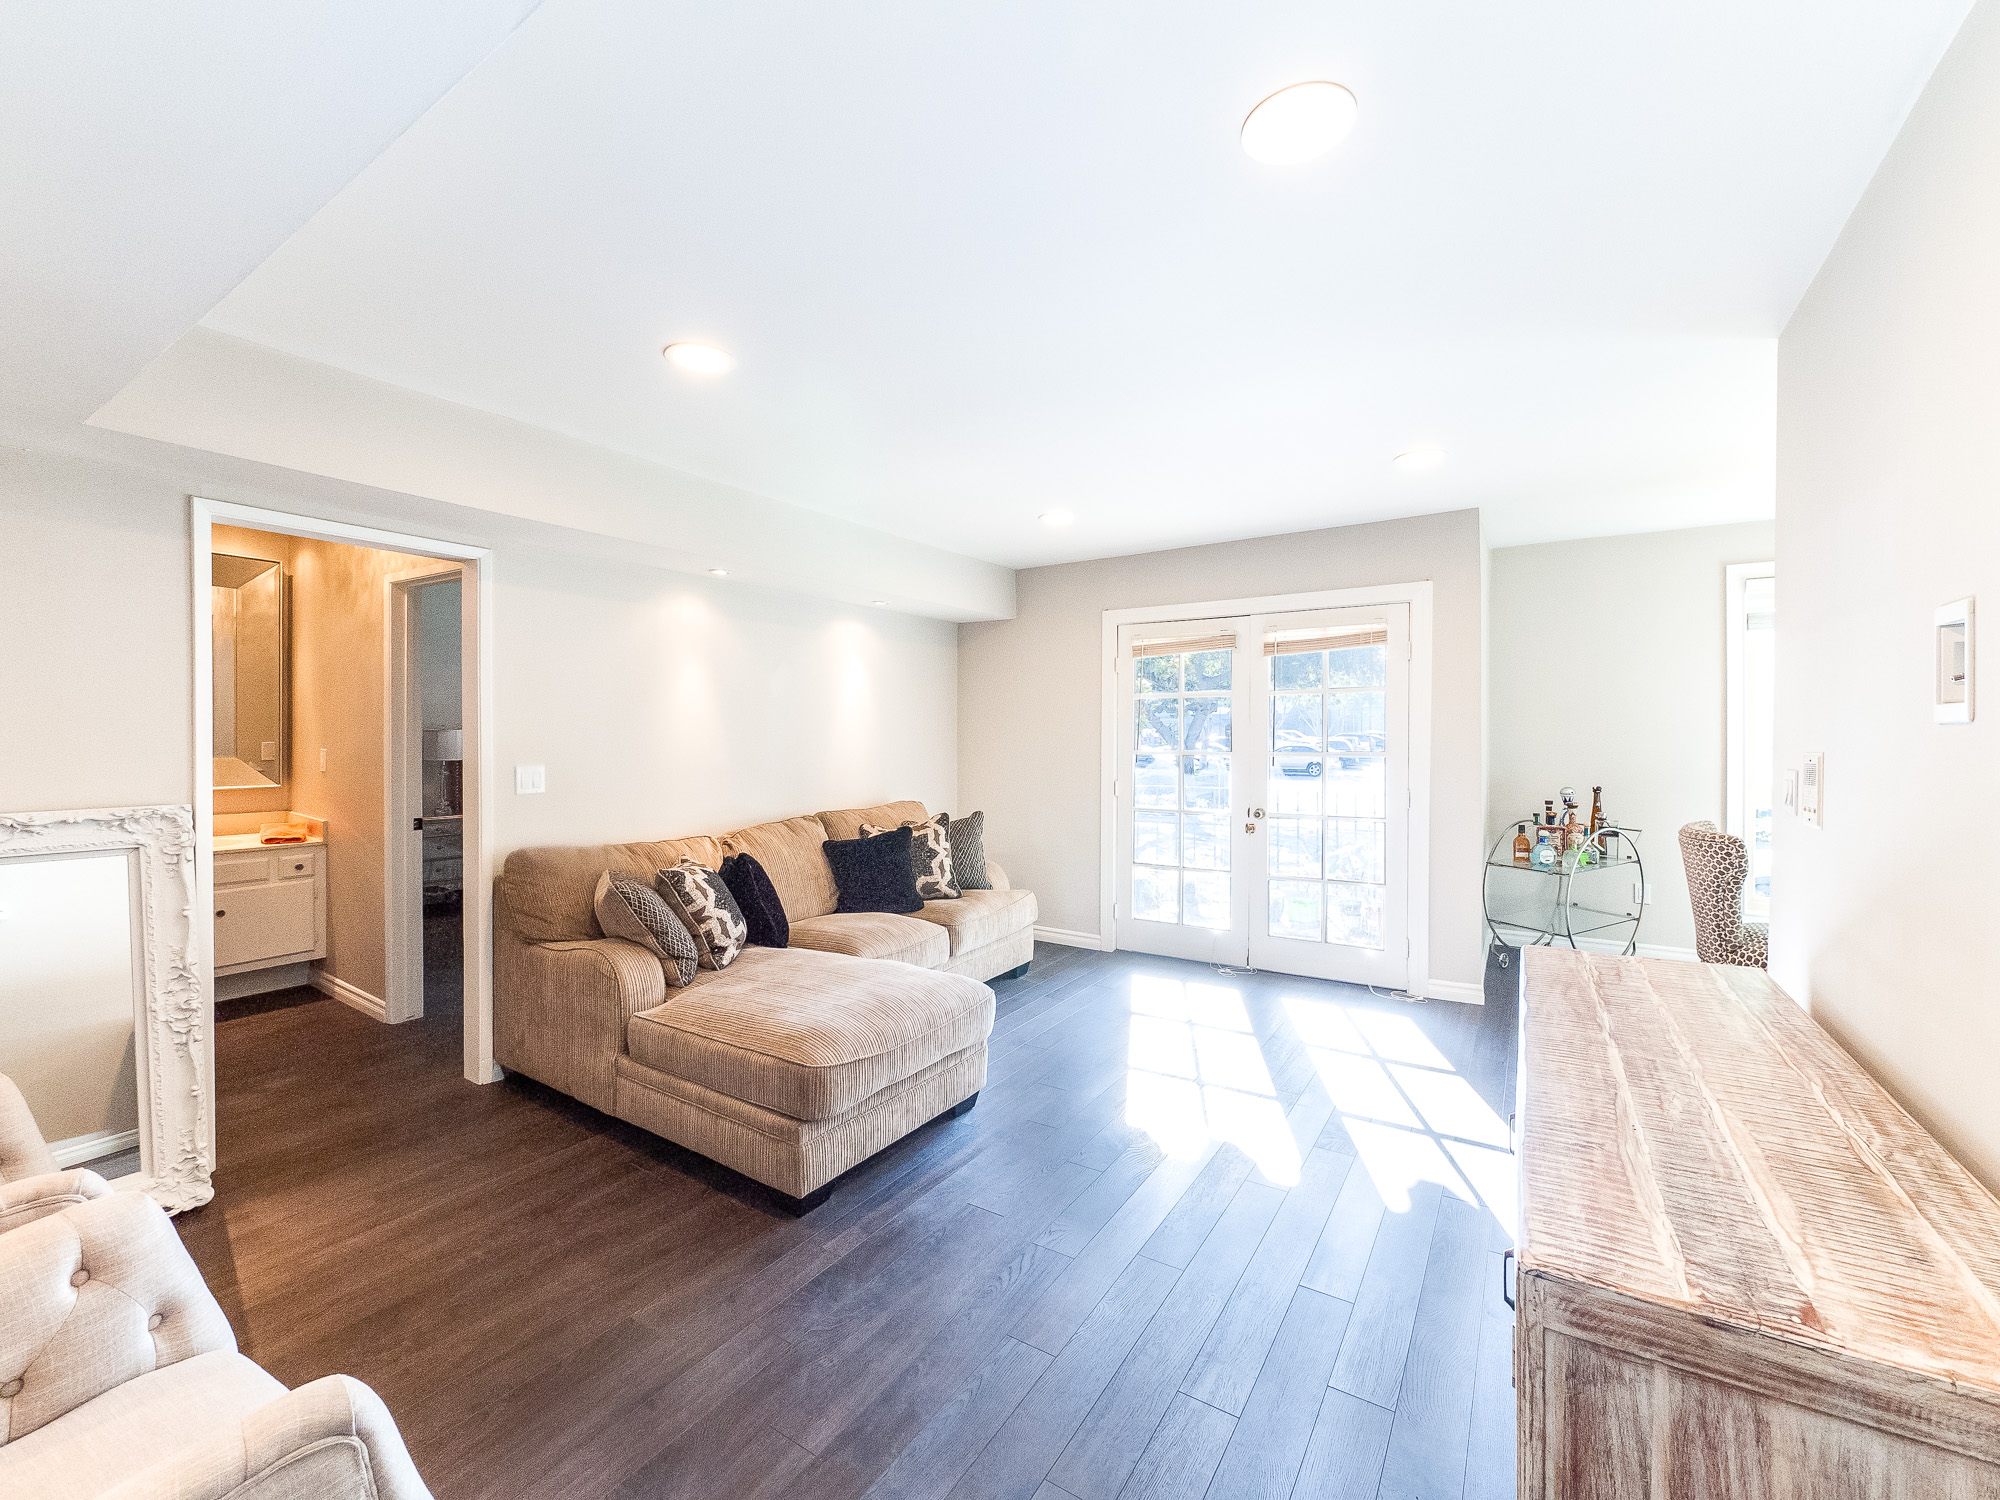 Like living in your own luxurious retreat! Serenity now! 1bedroom/1 bath